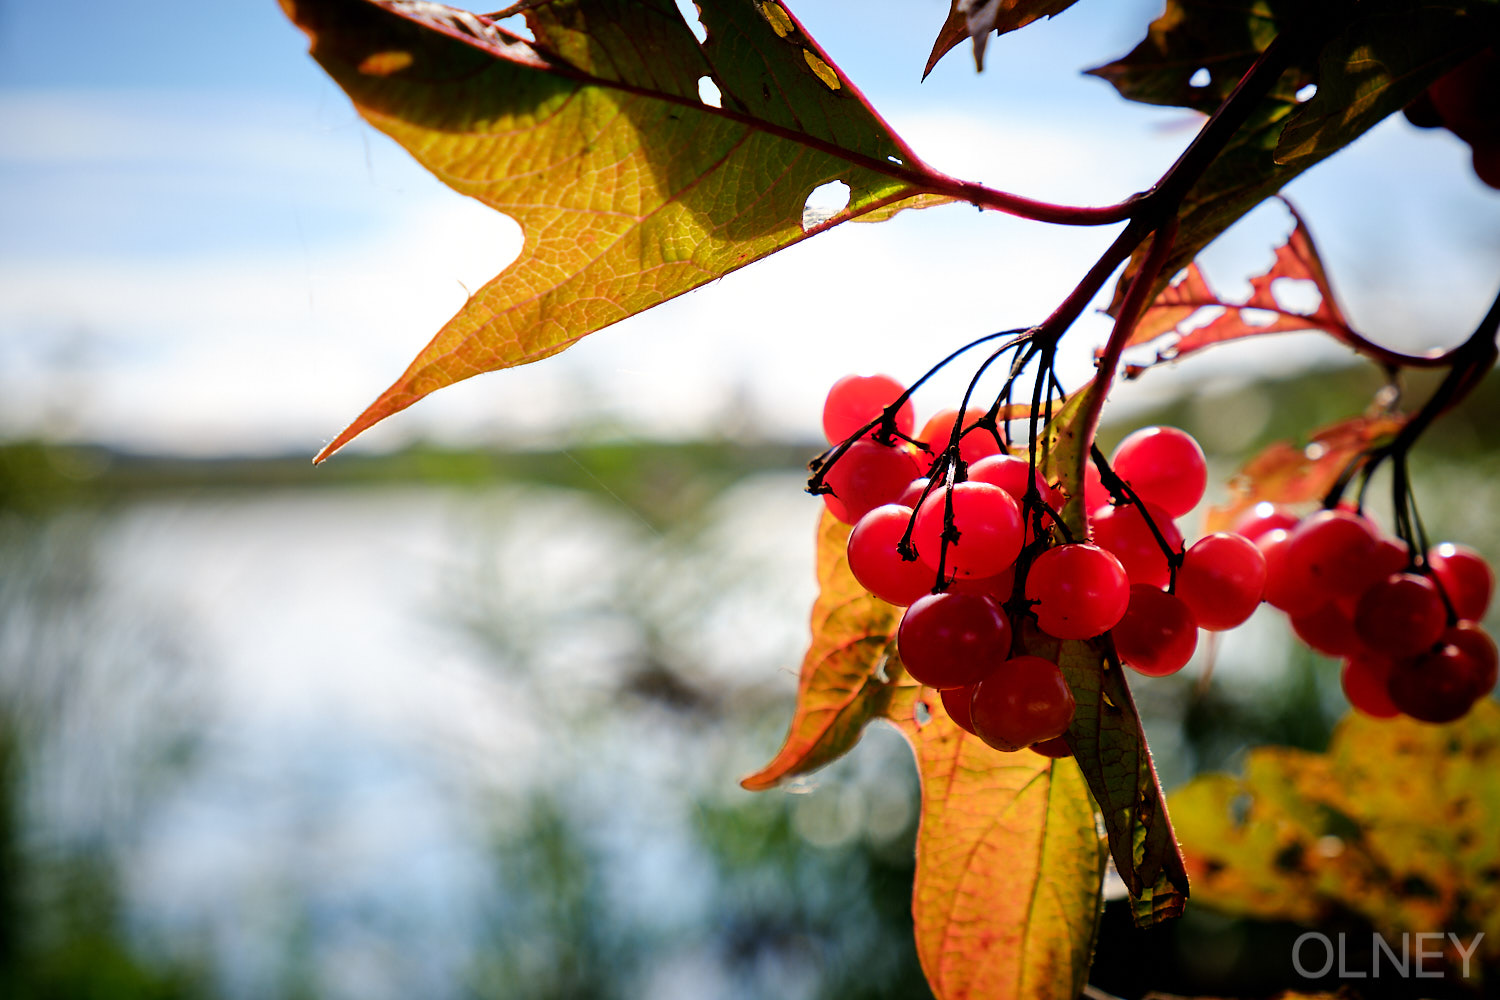 fall foliage and fruits at etang burbank